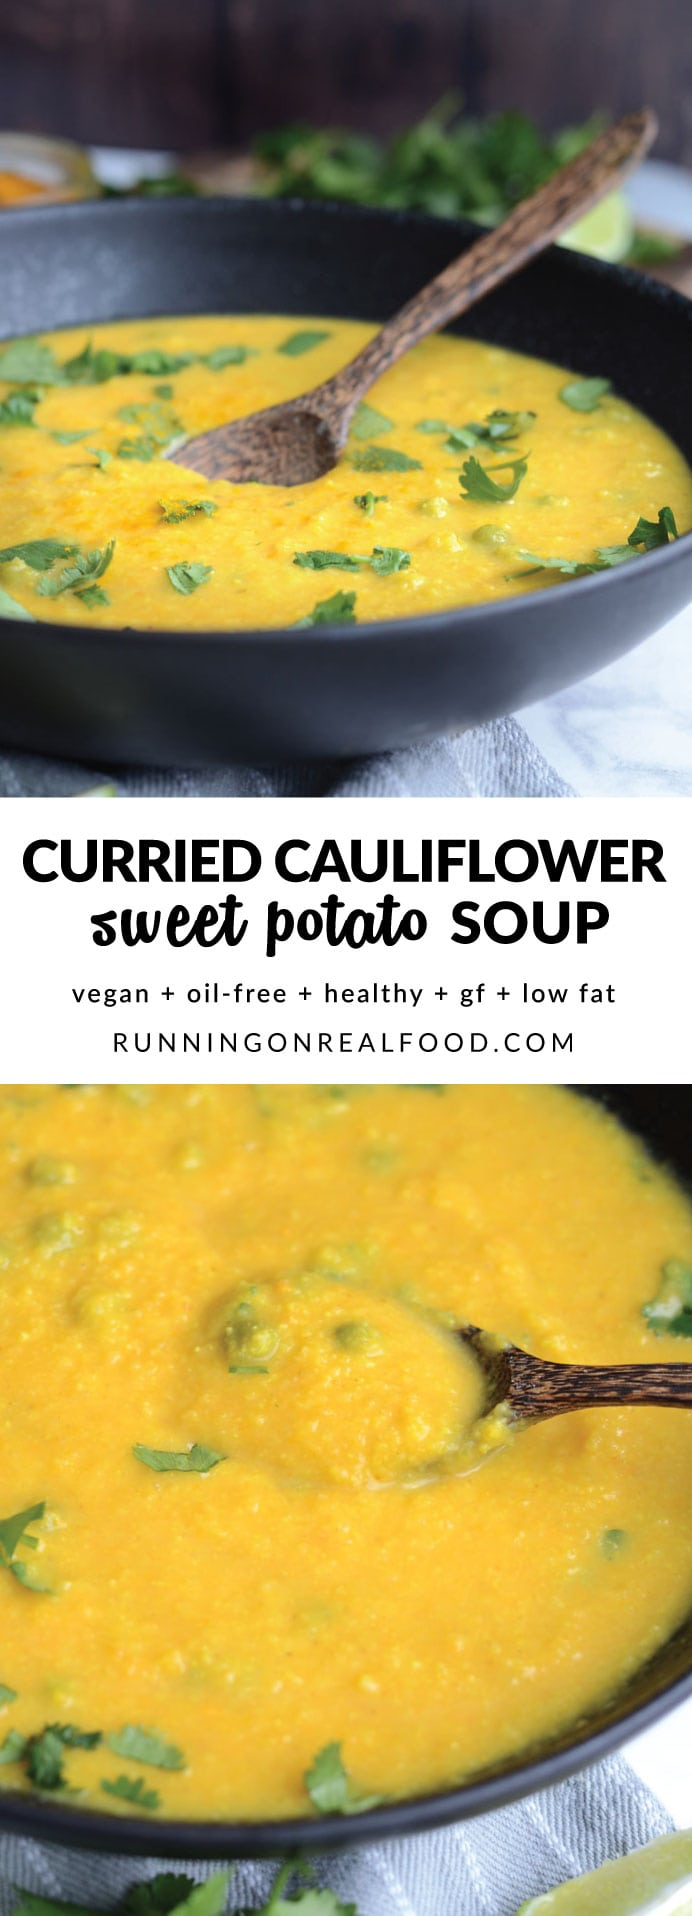 Healthy Curried Cauliflower Sweet Potato Soup that's delicious, budget-friendly, vegan, simple to make and bursting with amazing flavours.